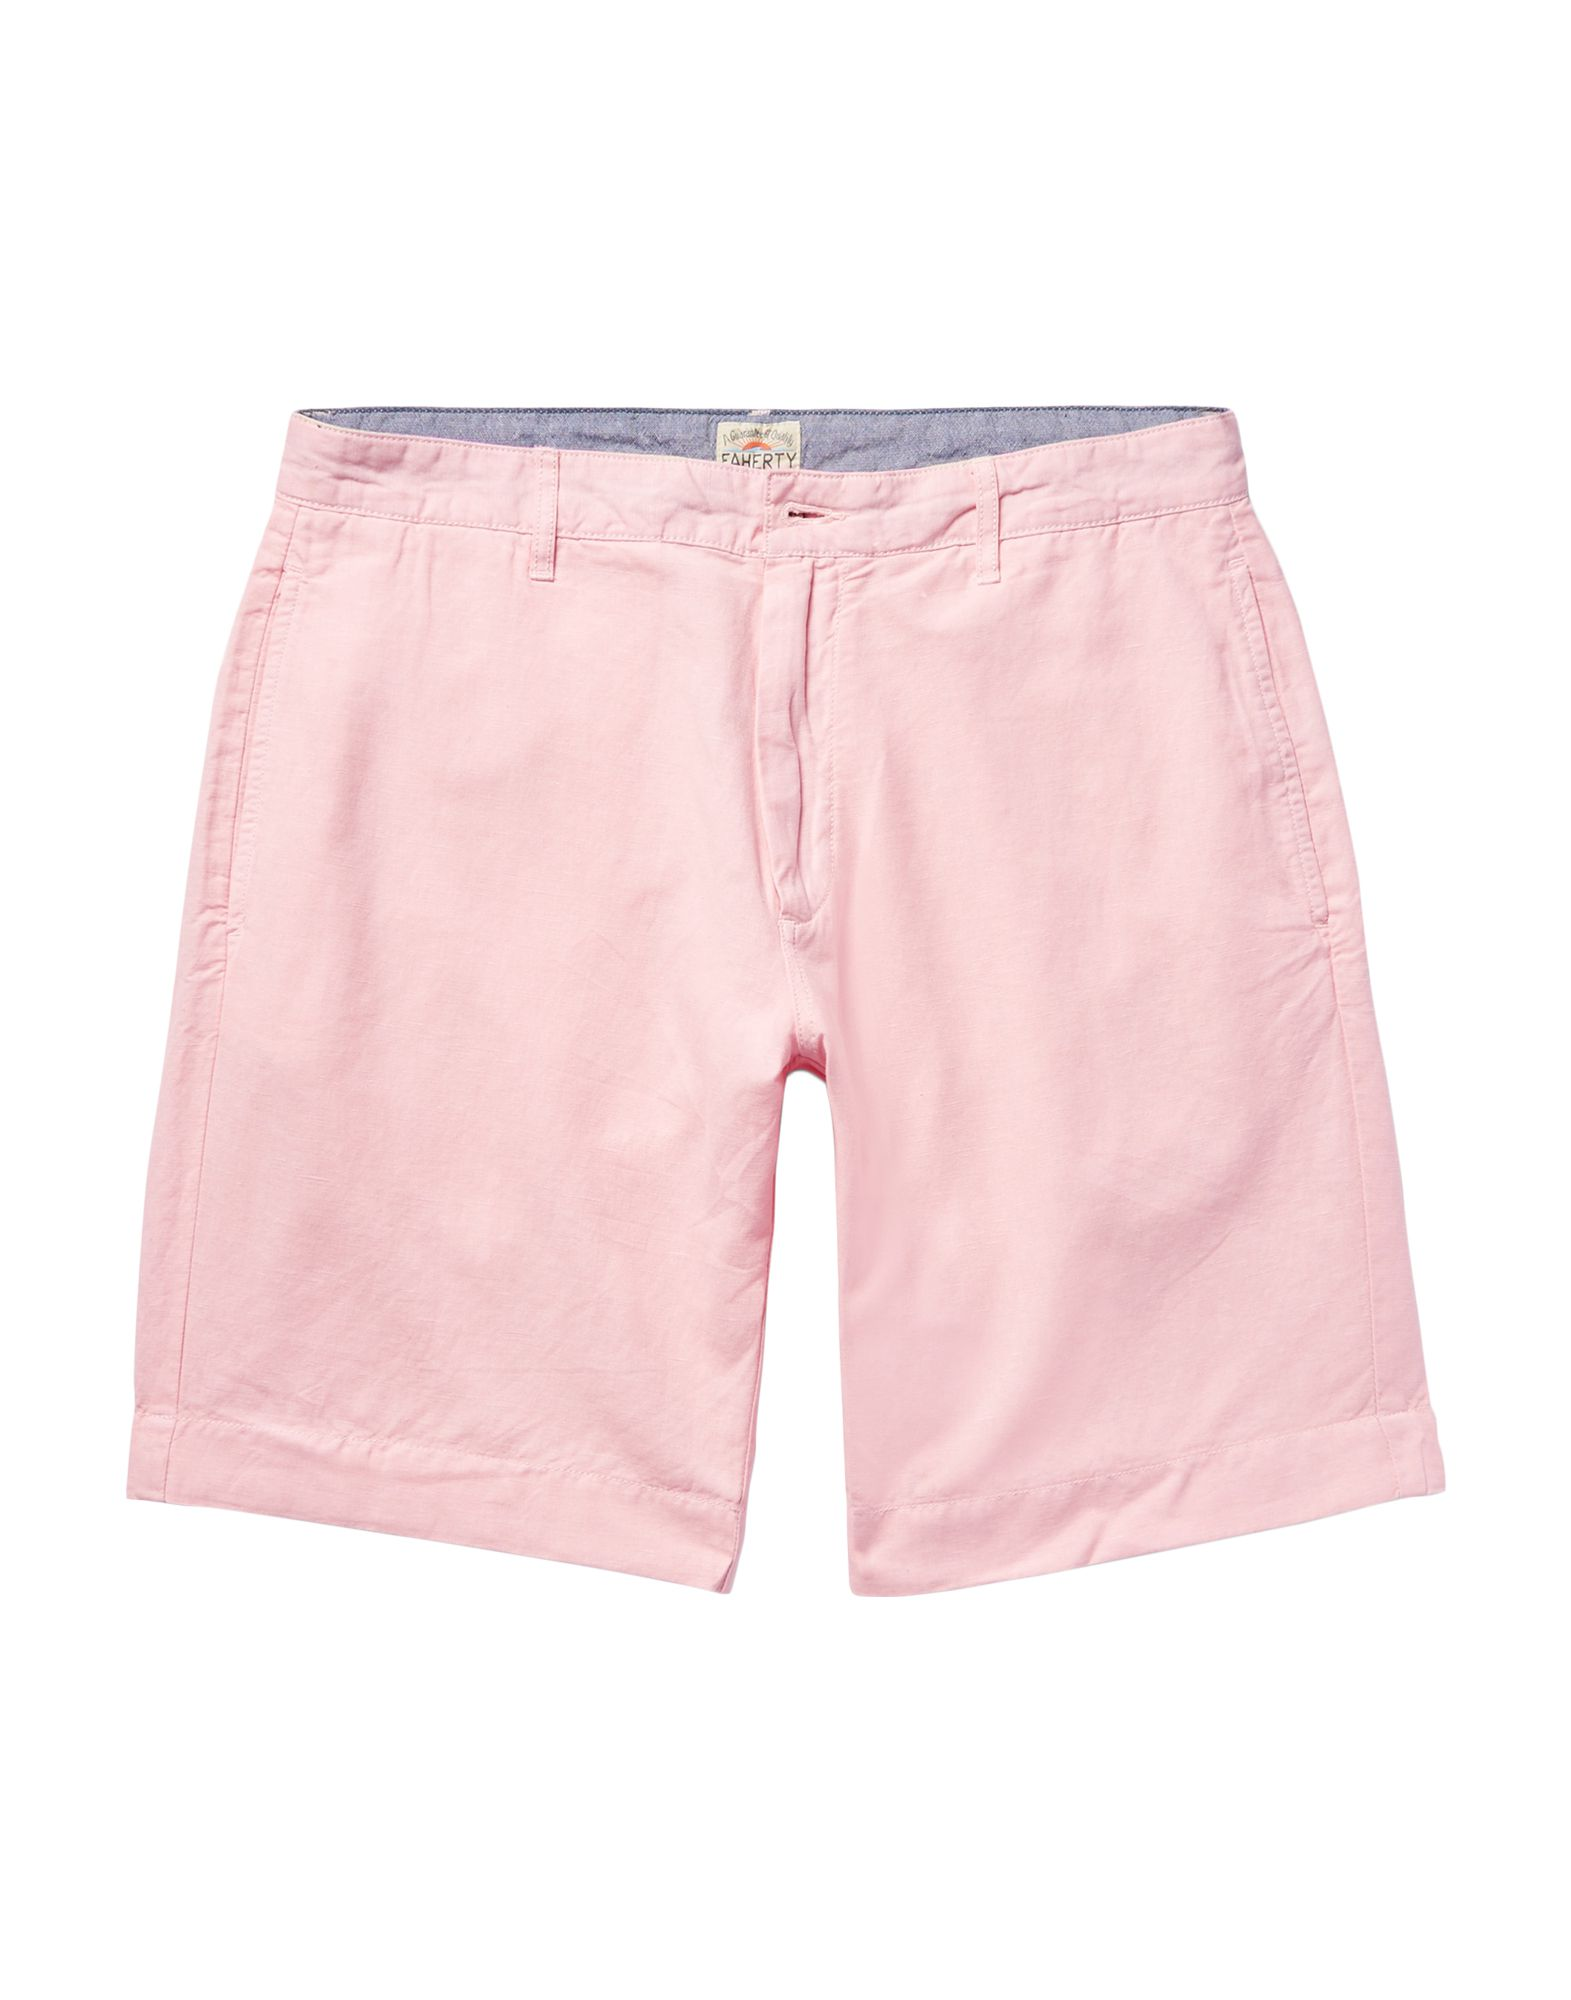 FAHERTY Shorts. plain weave, solid color, regular fit, high waisted, straight leg. 55% Flax, 45% Cotton BCI